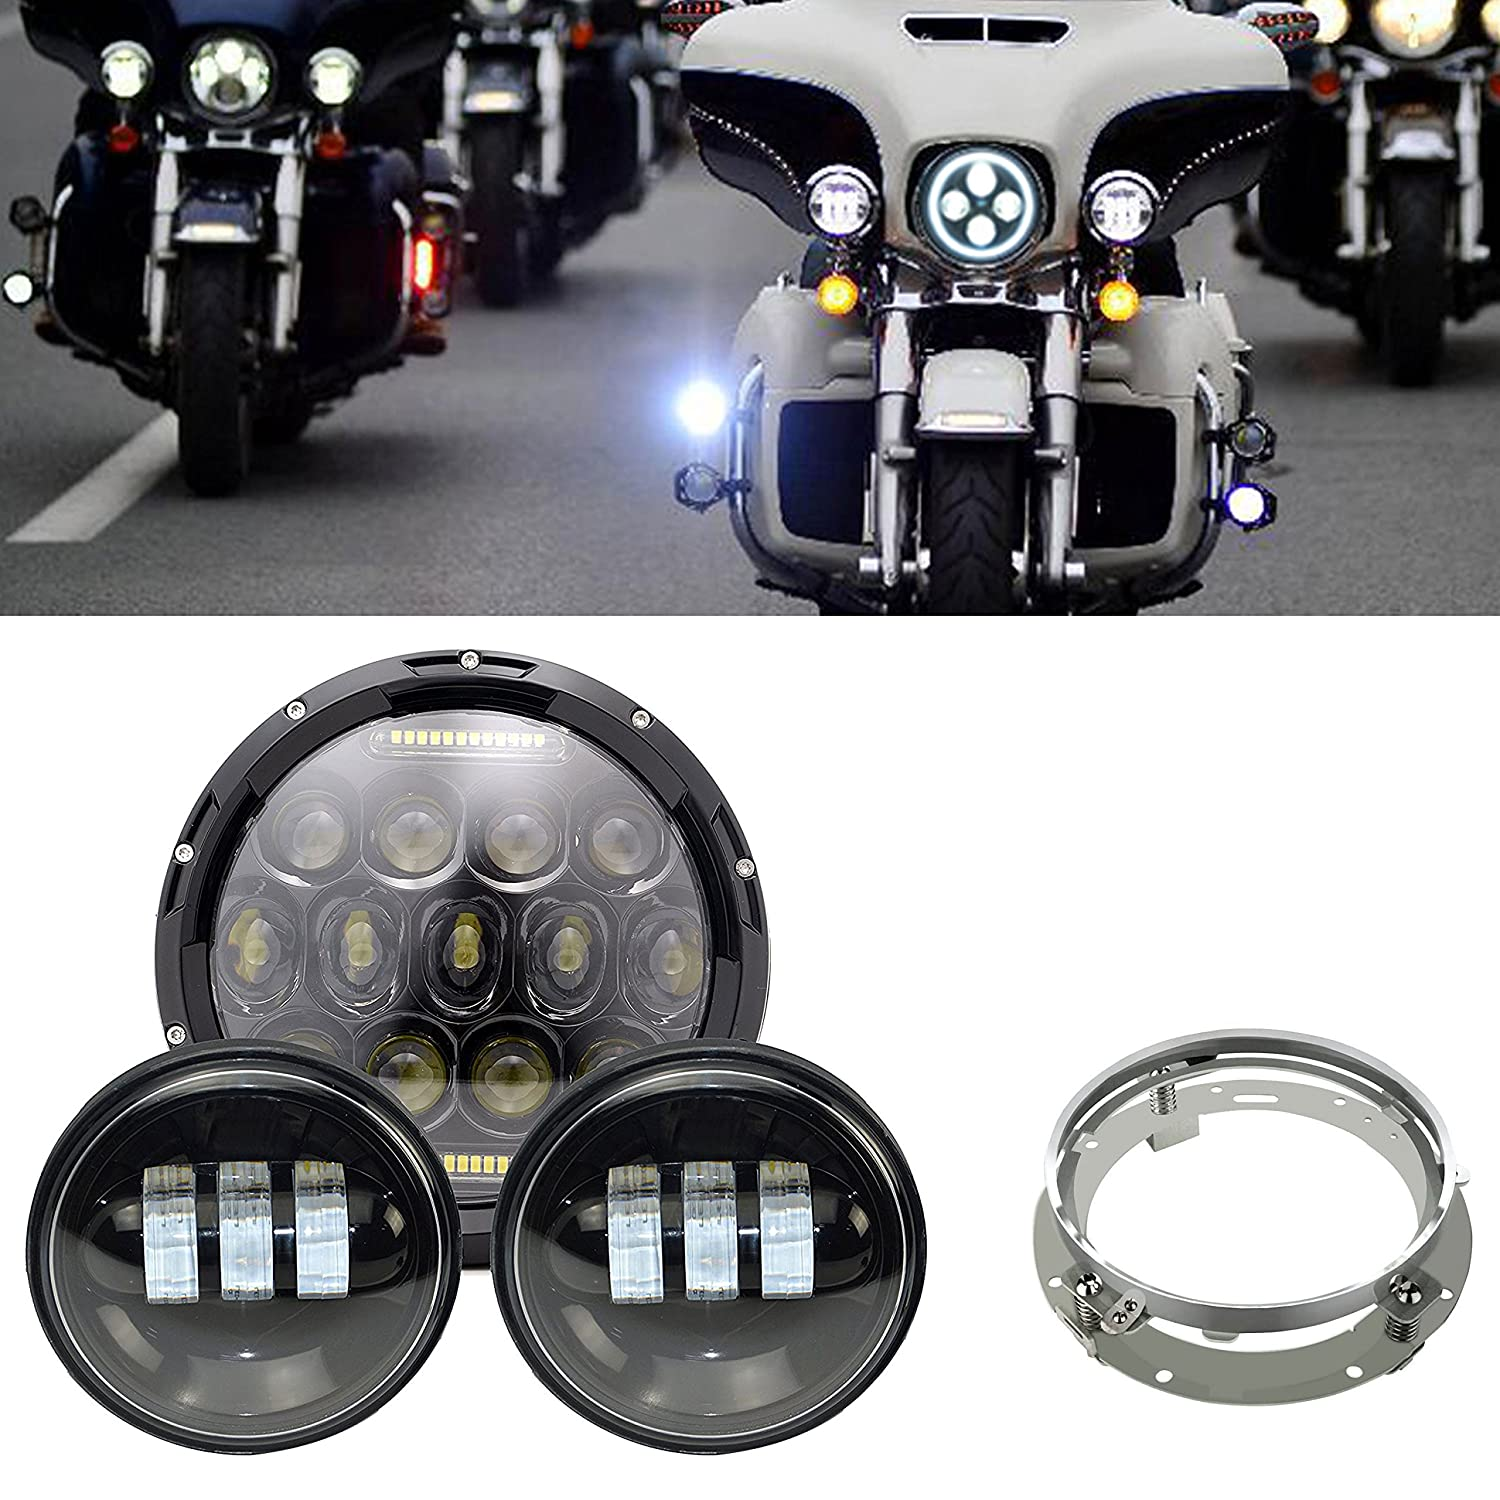 Daymaker Replace 7inch Led Headlight Motorcycle Harley